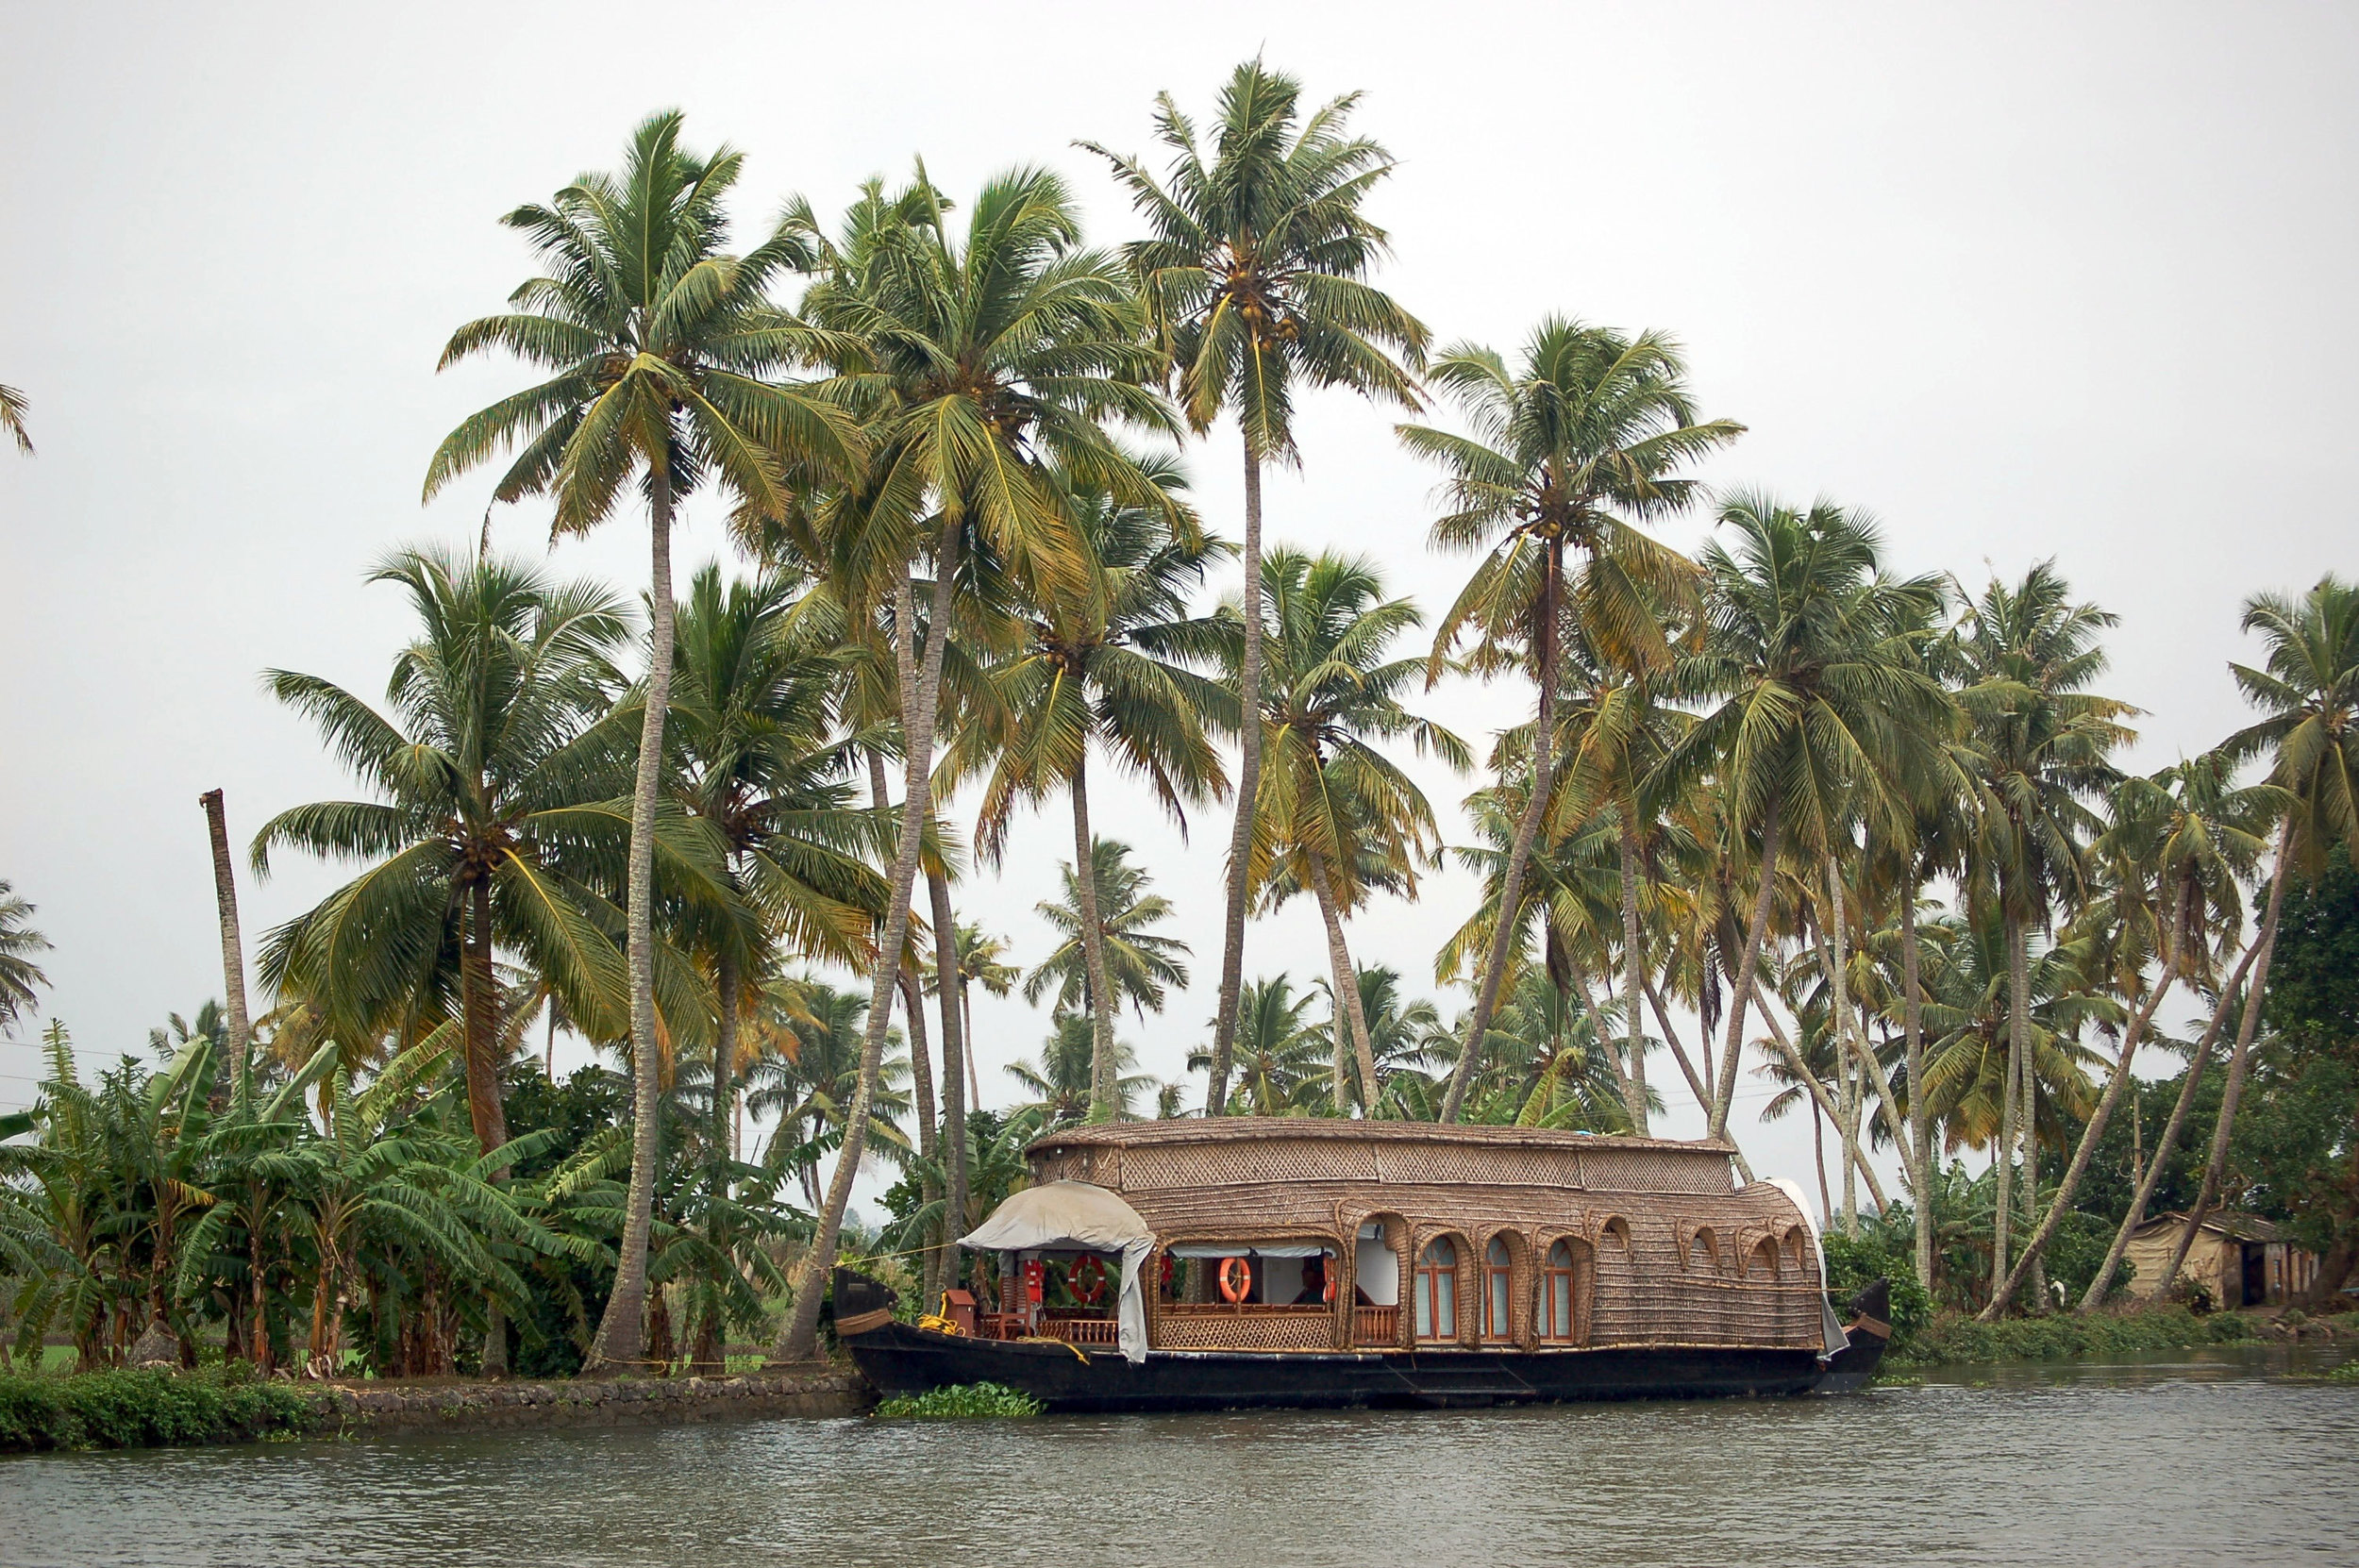 Kerala houseboat Photo credit:  Upendra Kanda